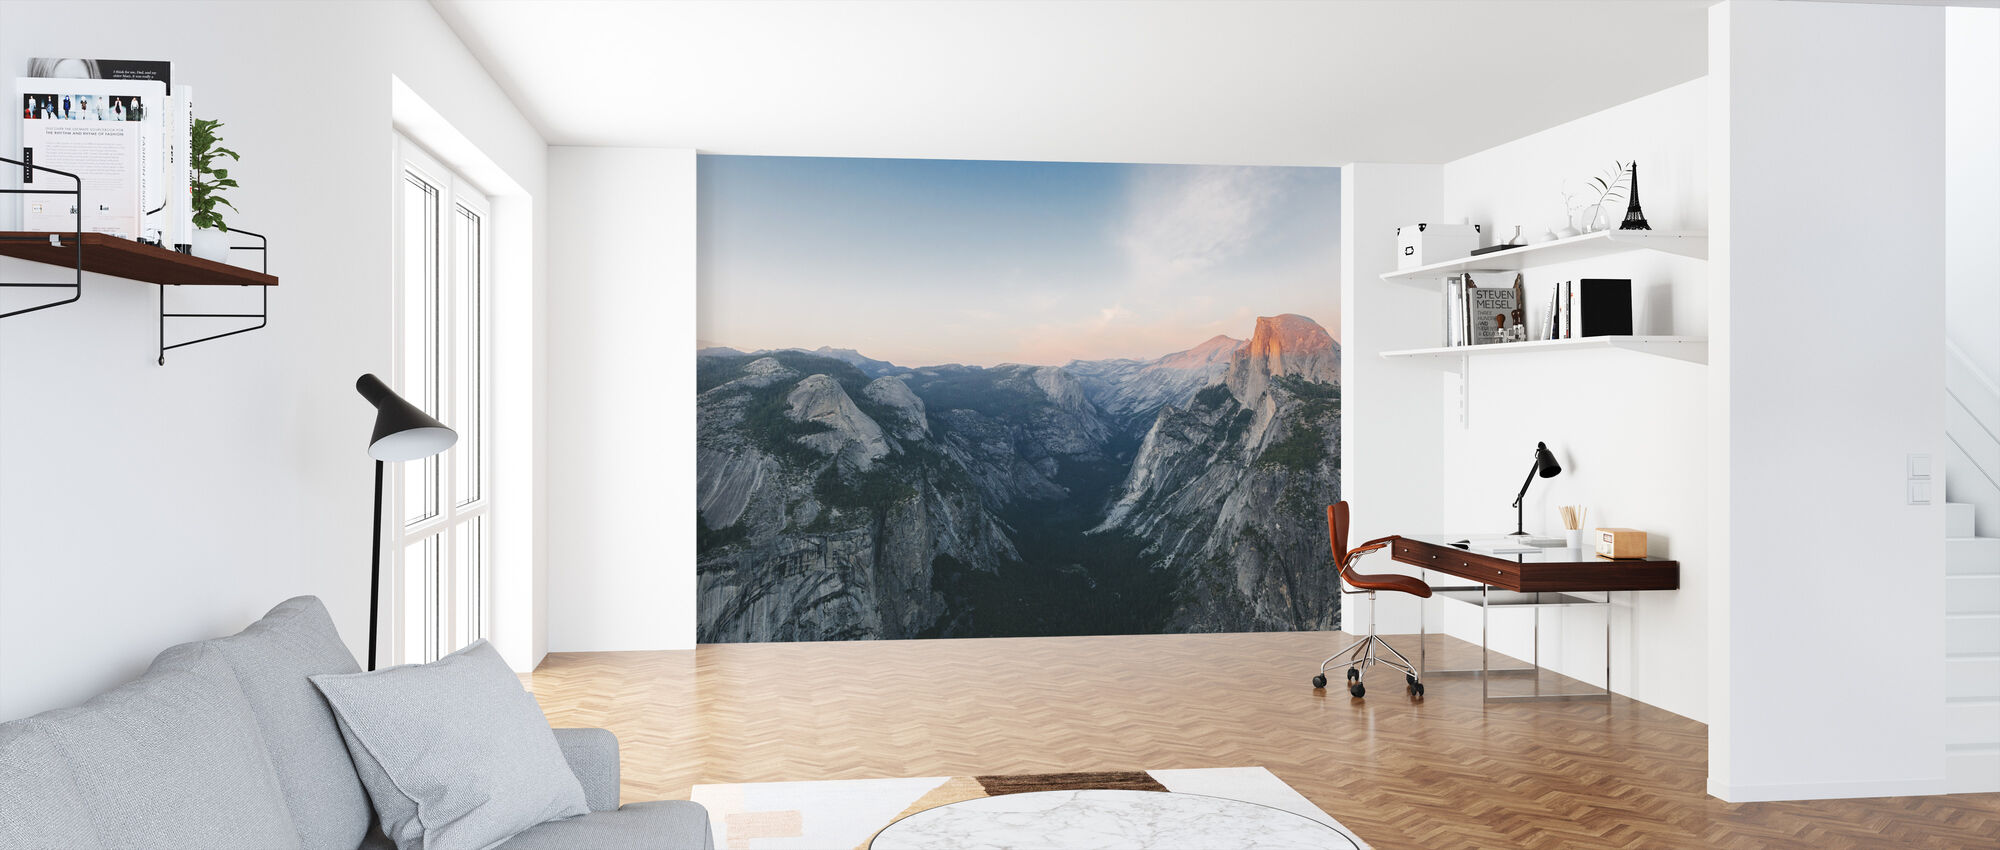 Half Dome, Yosemite National Park - Wallpaper - Office